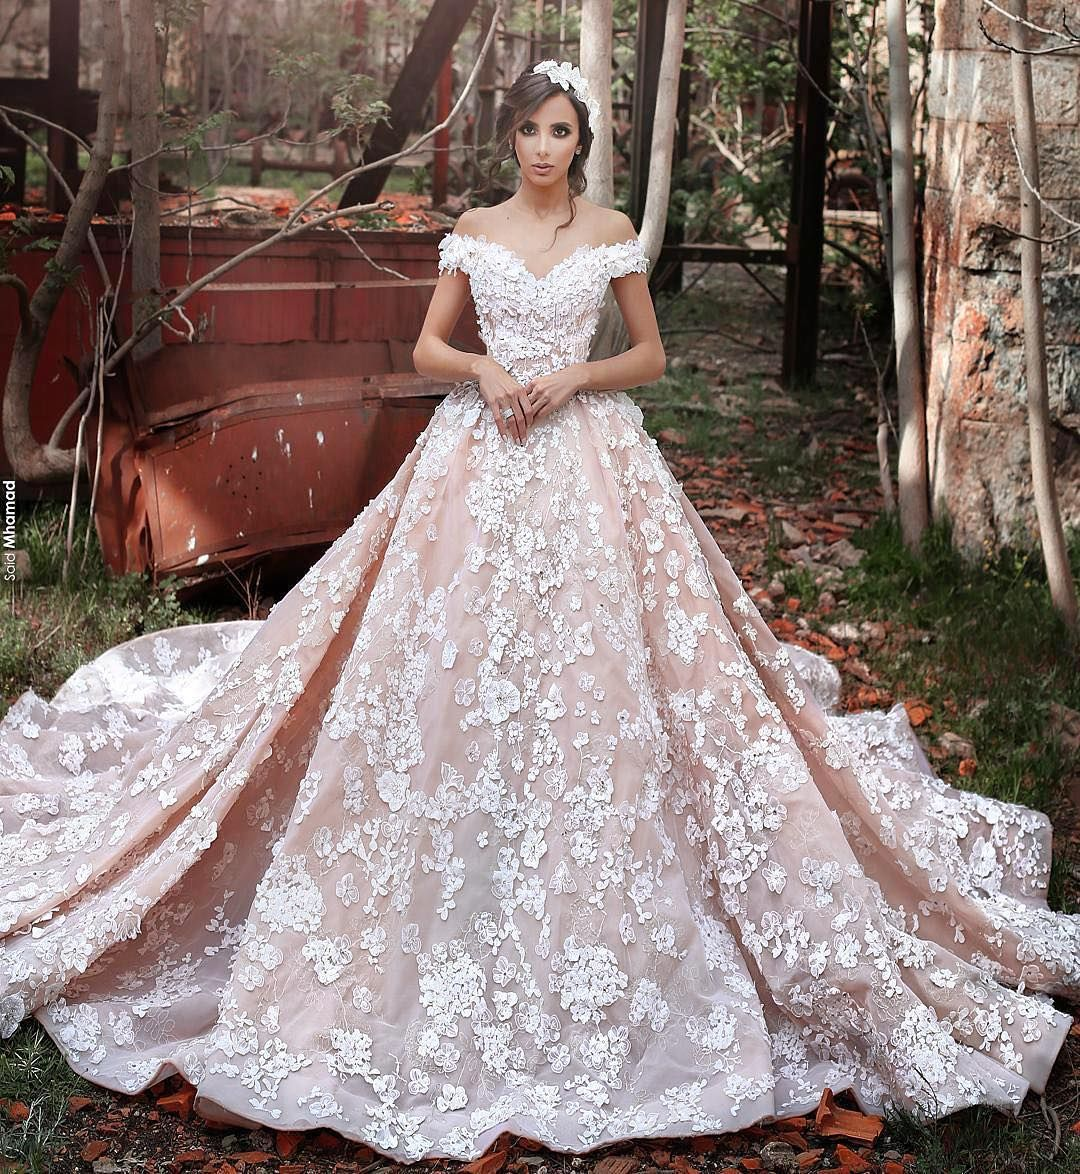 Off The Shoulder Gowns Are One Of The Biggest Bridal Trends Of